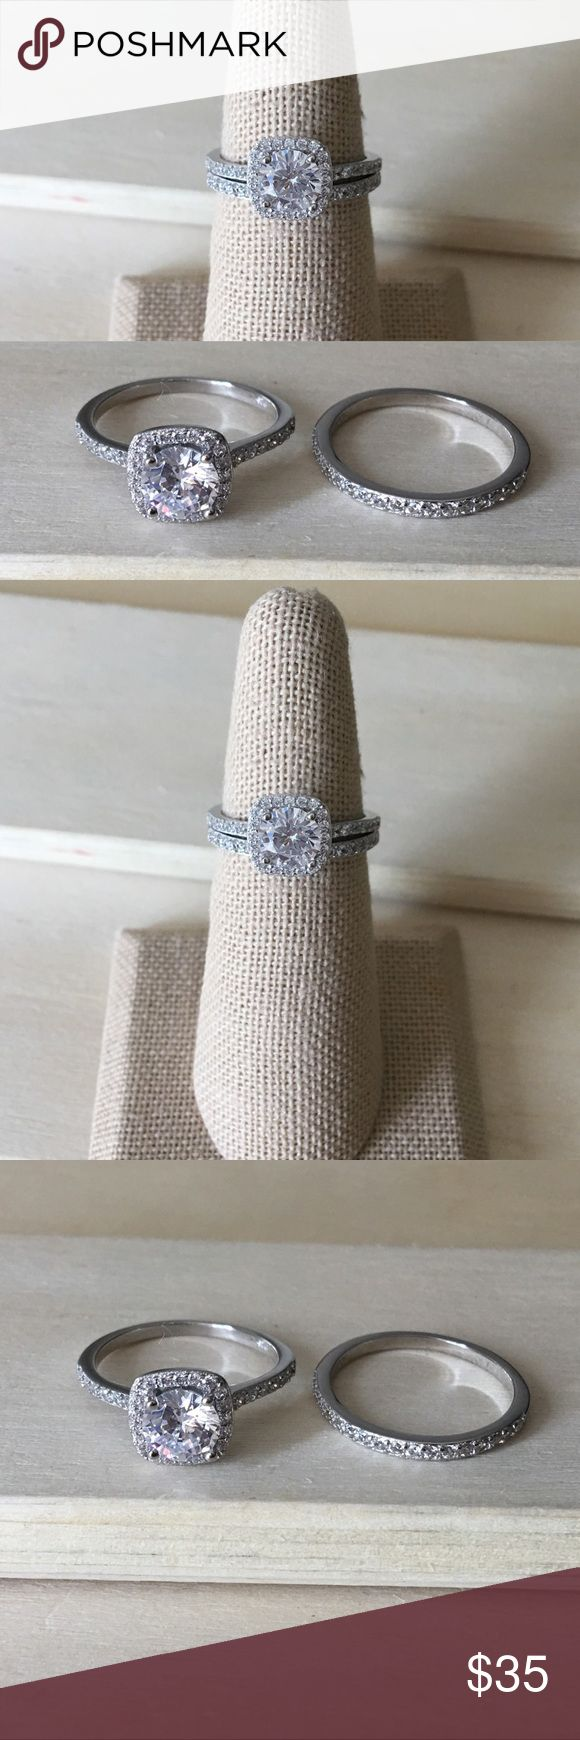 Sterling Silver Halo Wedding Ring Set Condition: New Metal: Stamped .925 Sterling Silver Stone: Cubic Zirconia   Will come in a gift box.  Reasonable offers accepted! Please ask any questions you have ☺️  -Sterling Silver Ring Women's Jewelry Rings New Promise Ring Engagement Gift Anniversary- Jewelry Rings #weddingjewelry